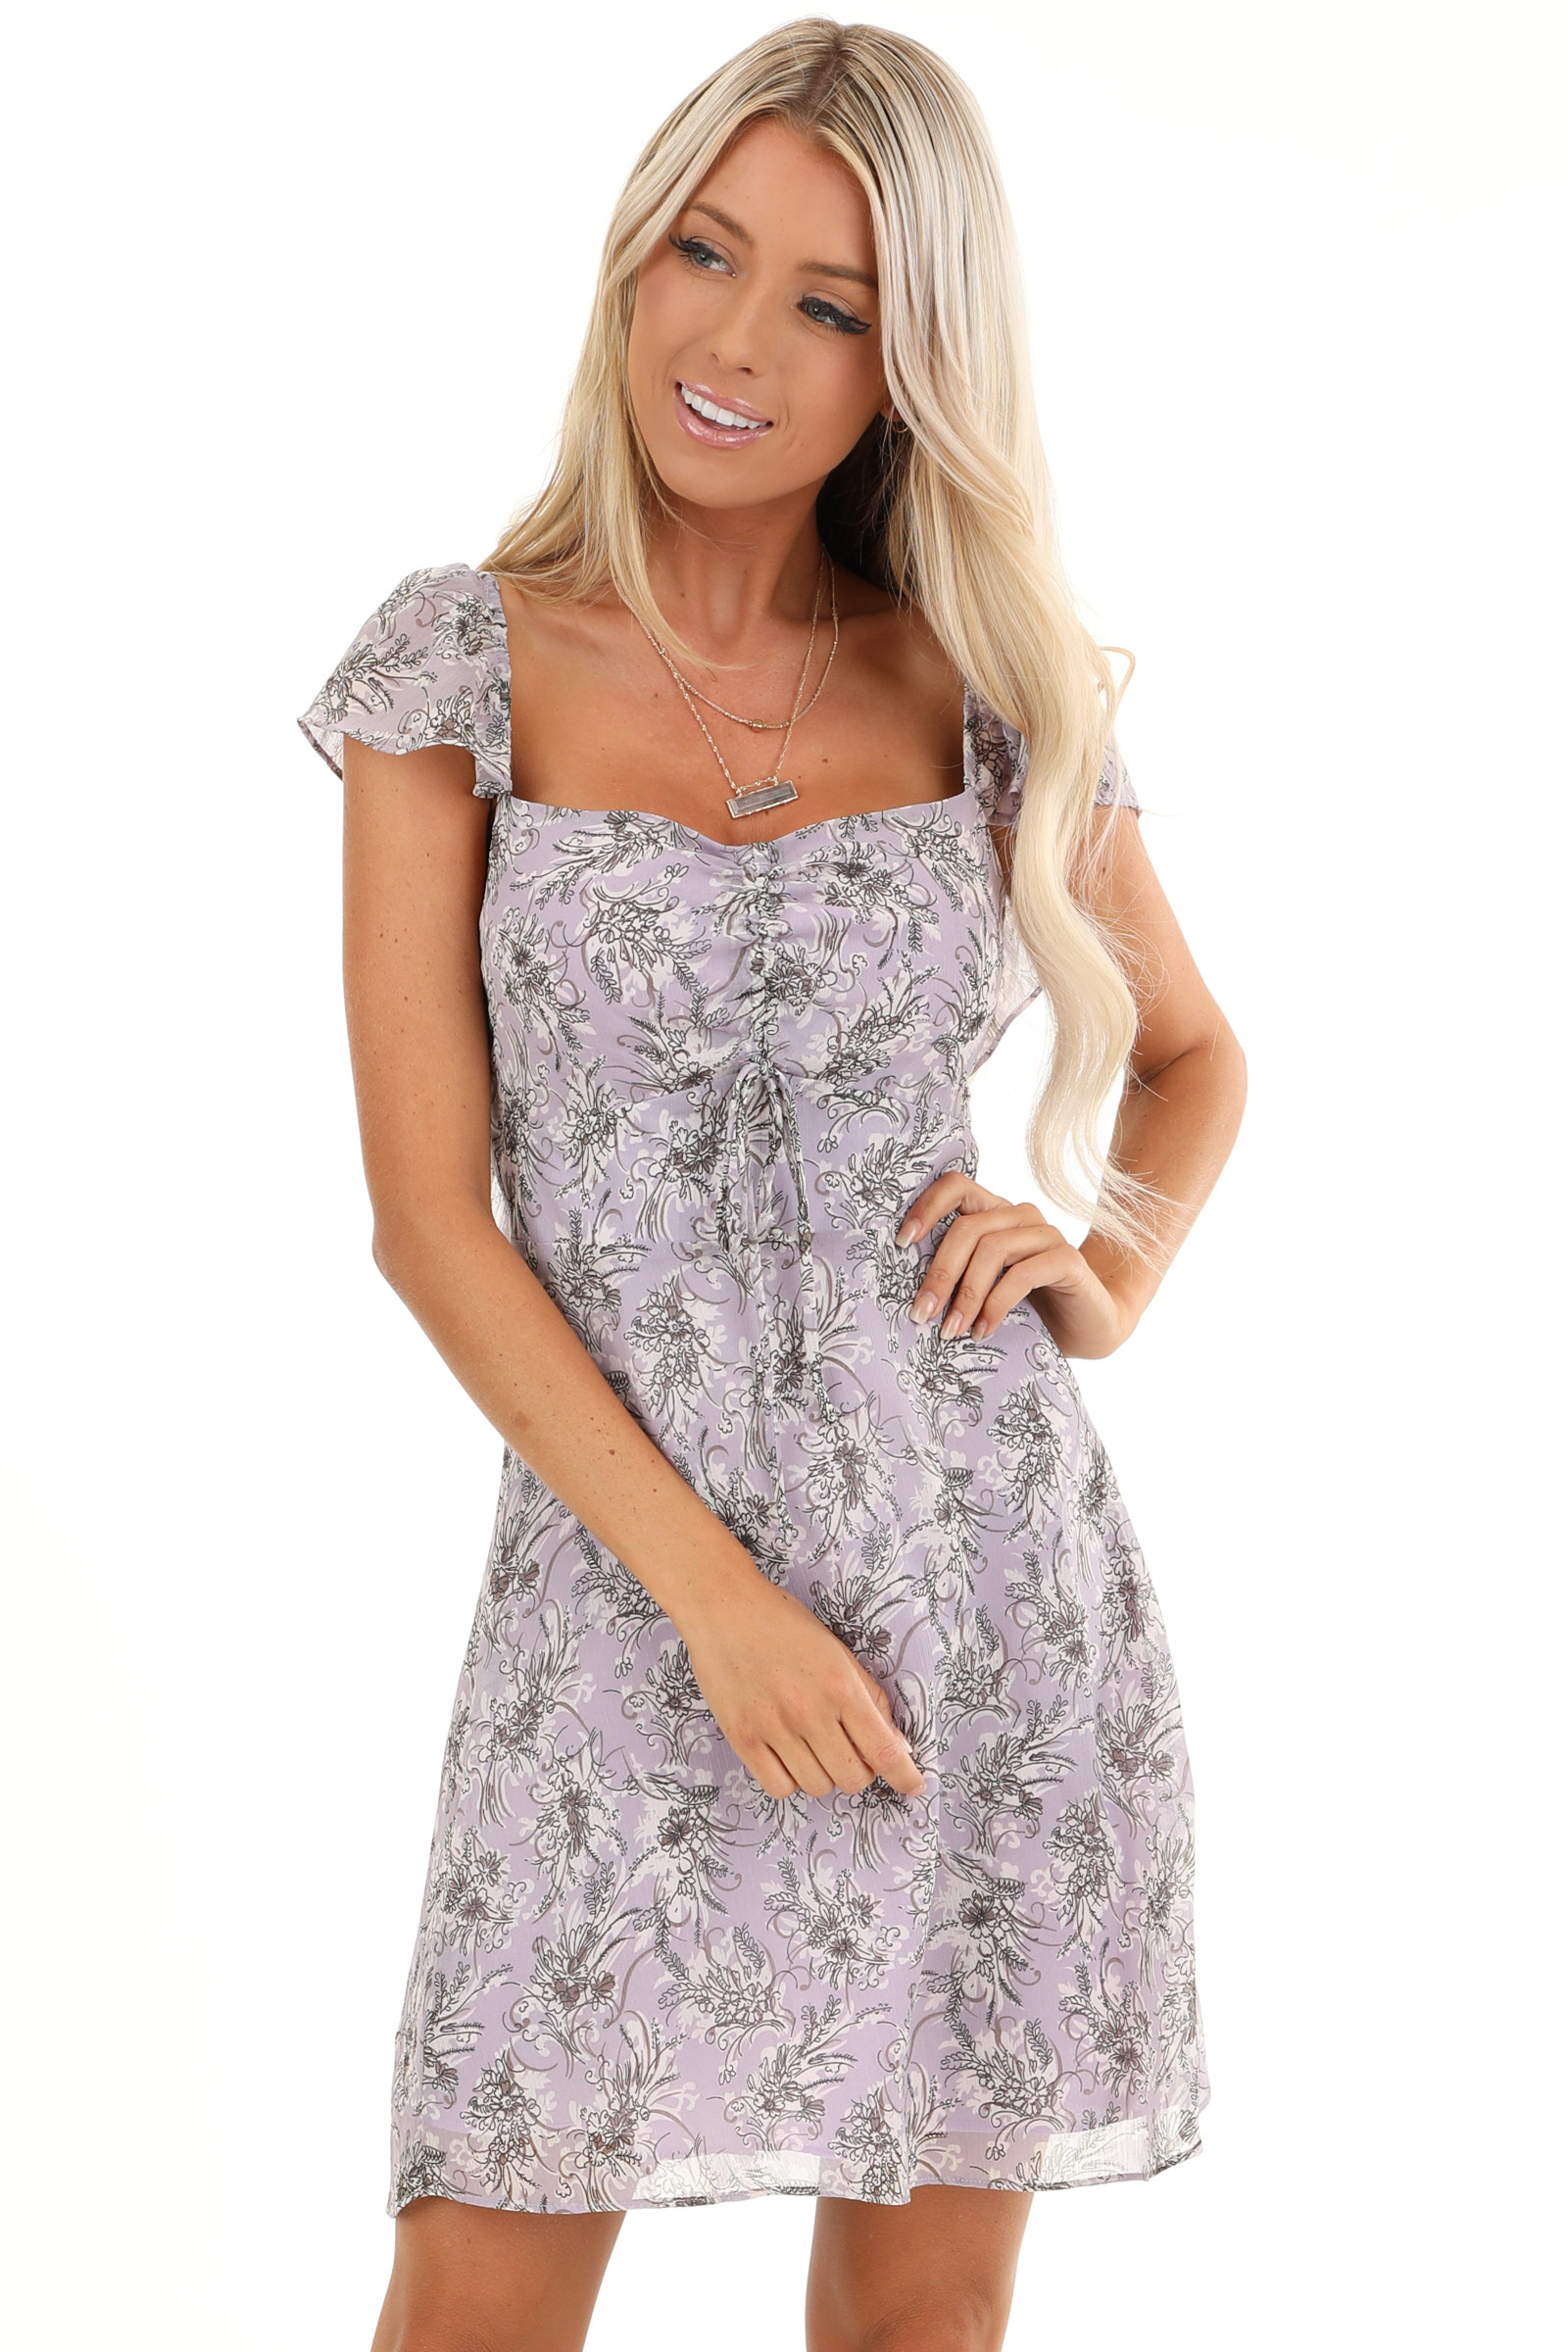 Lavender Floral Print Mini Dress with Open Back and Self Tie